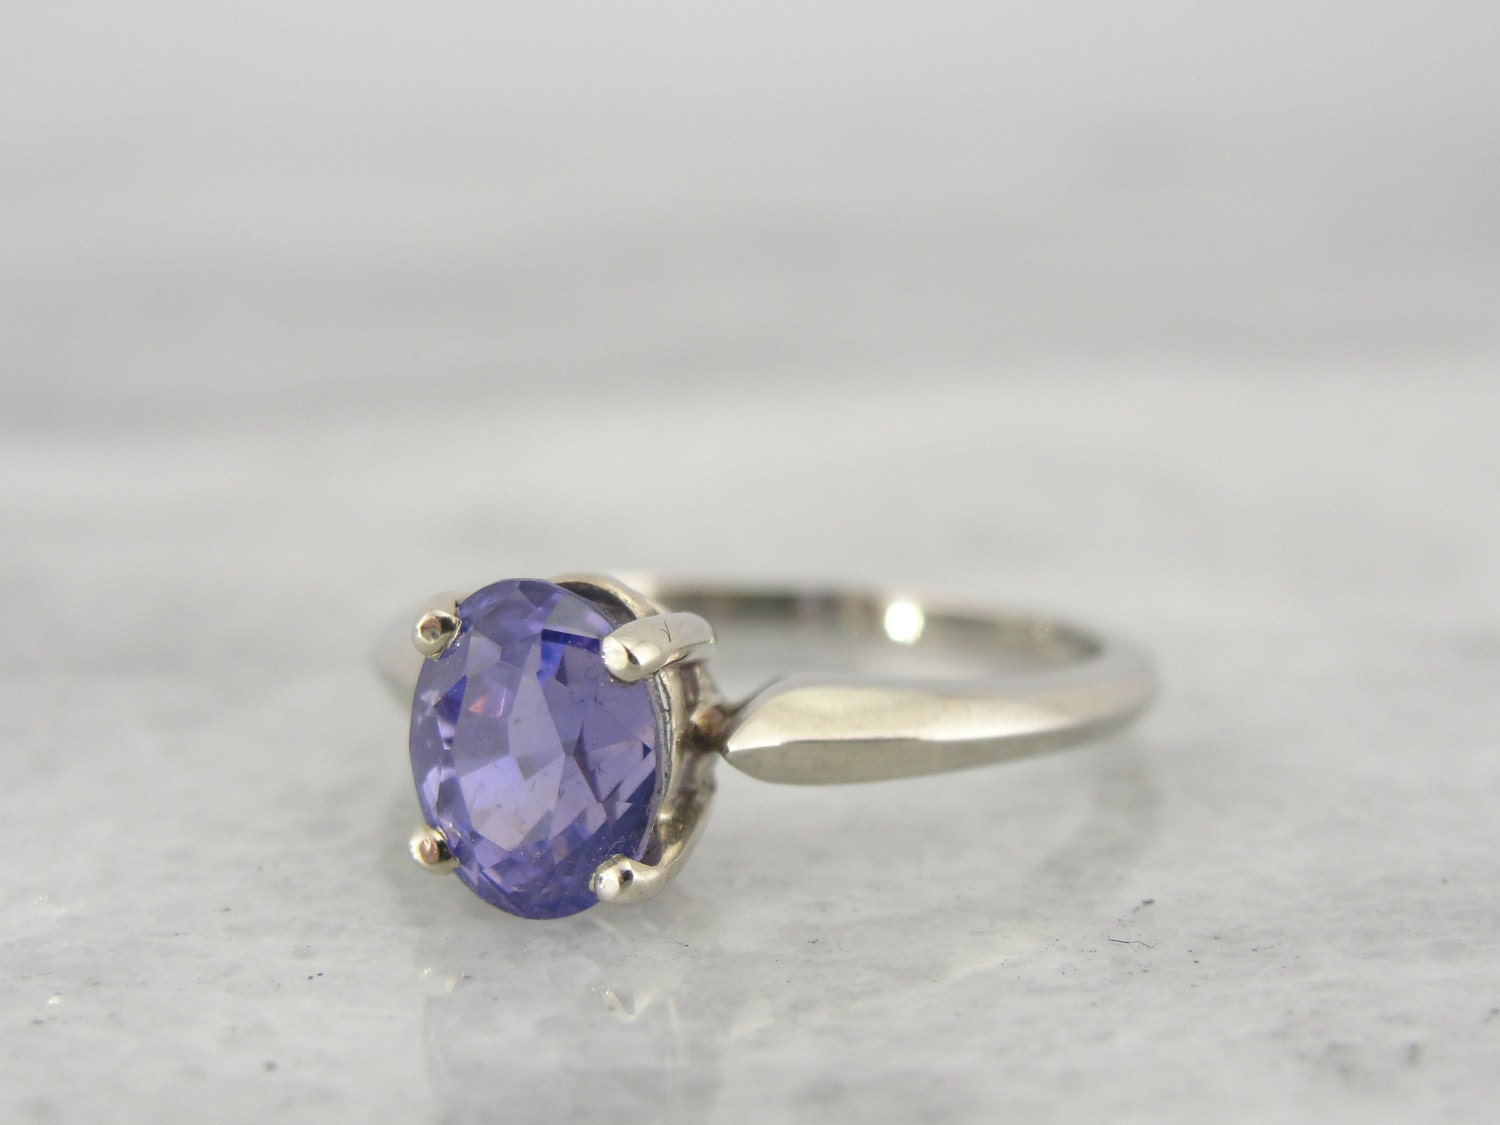 ken by montana and dana design unique sapphire blue rare gemstone engagement pin rings